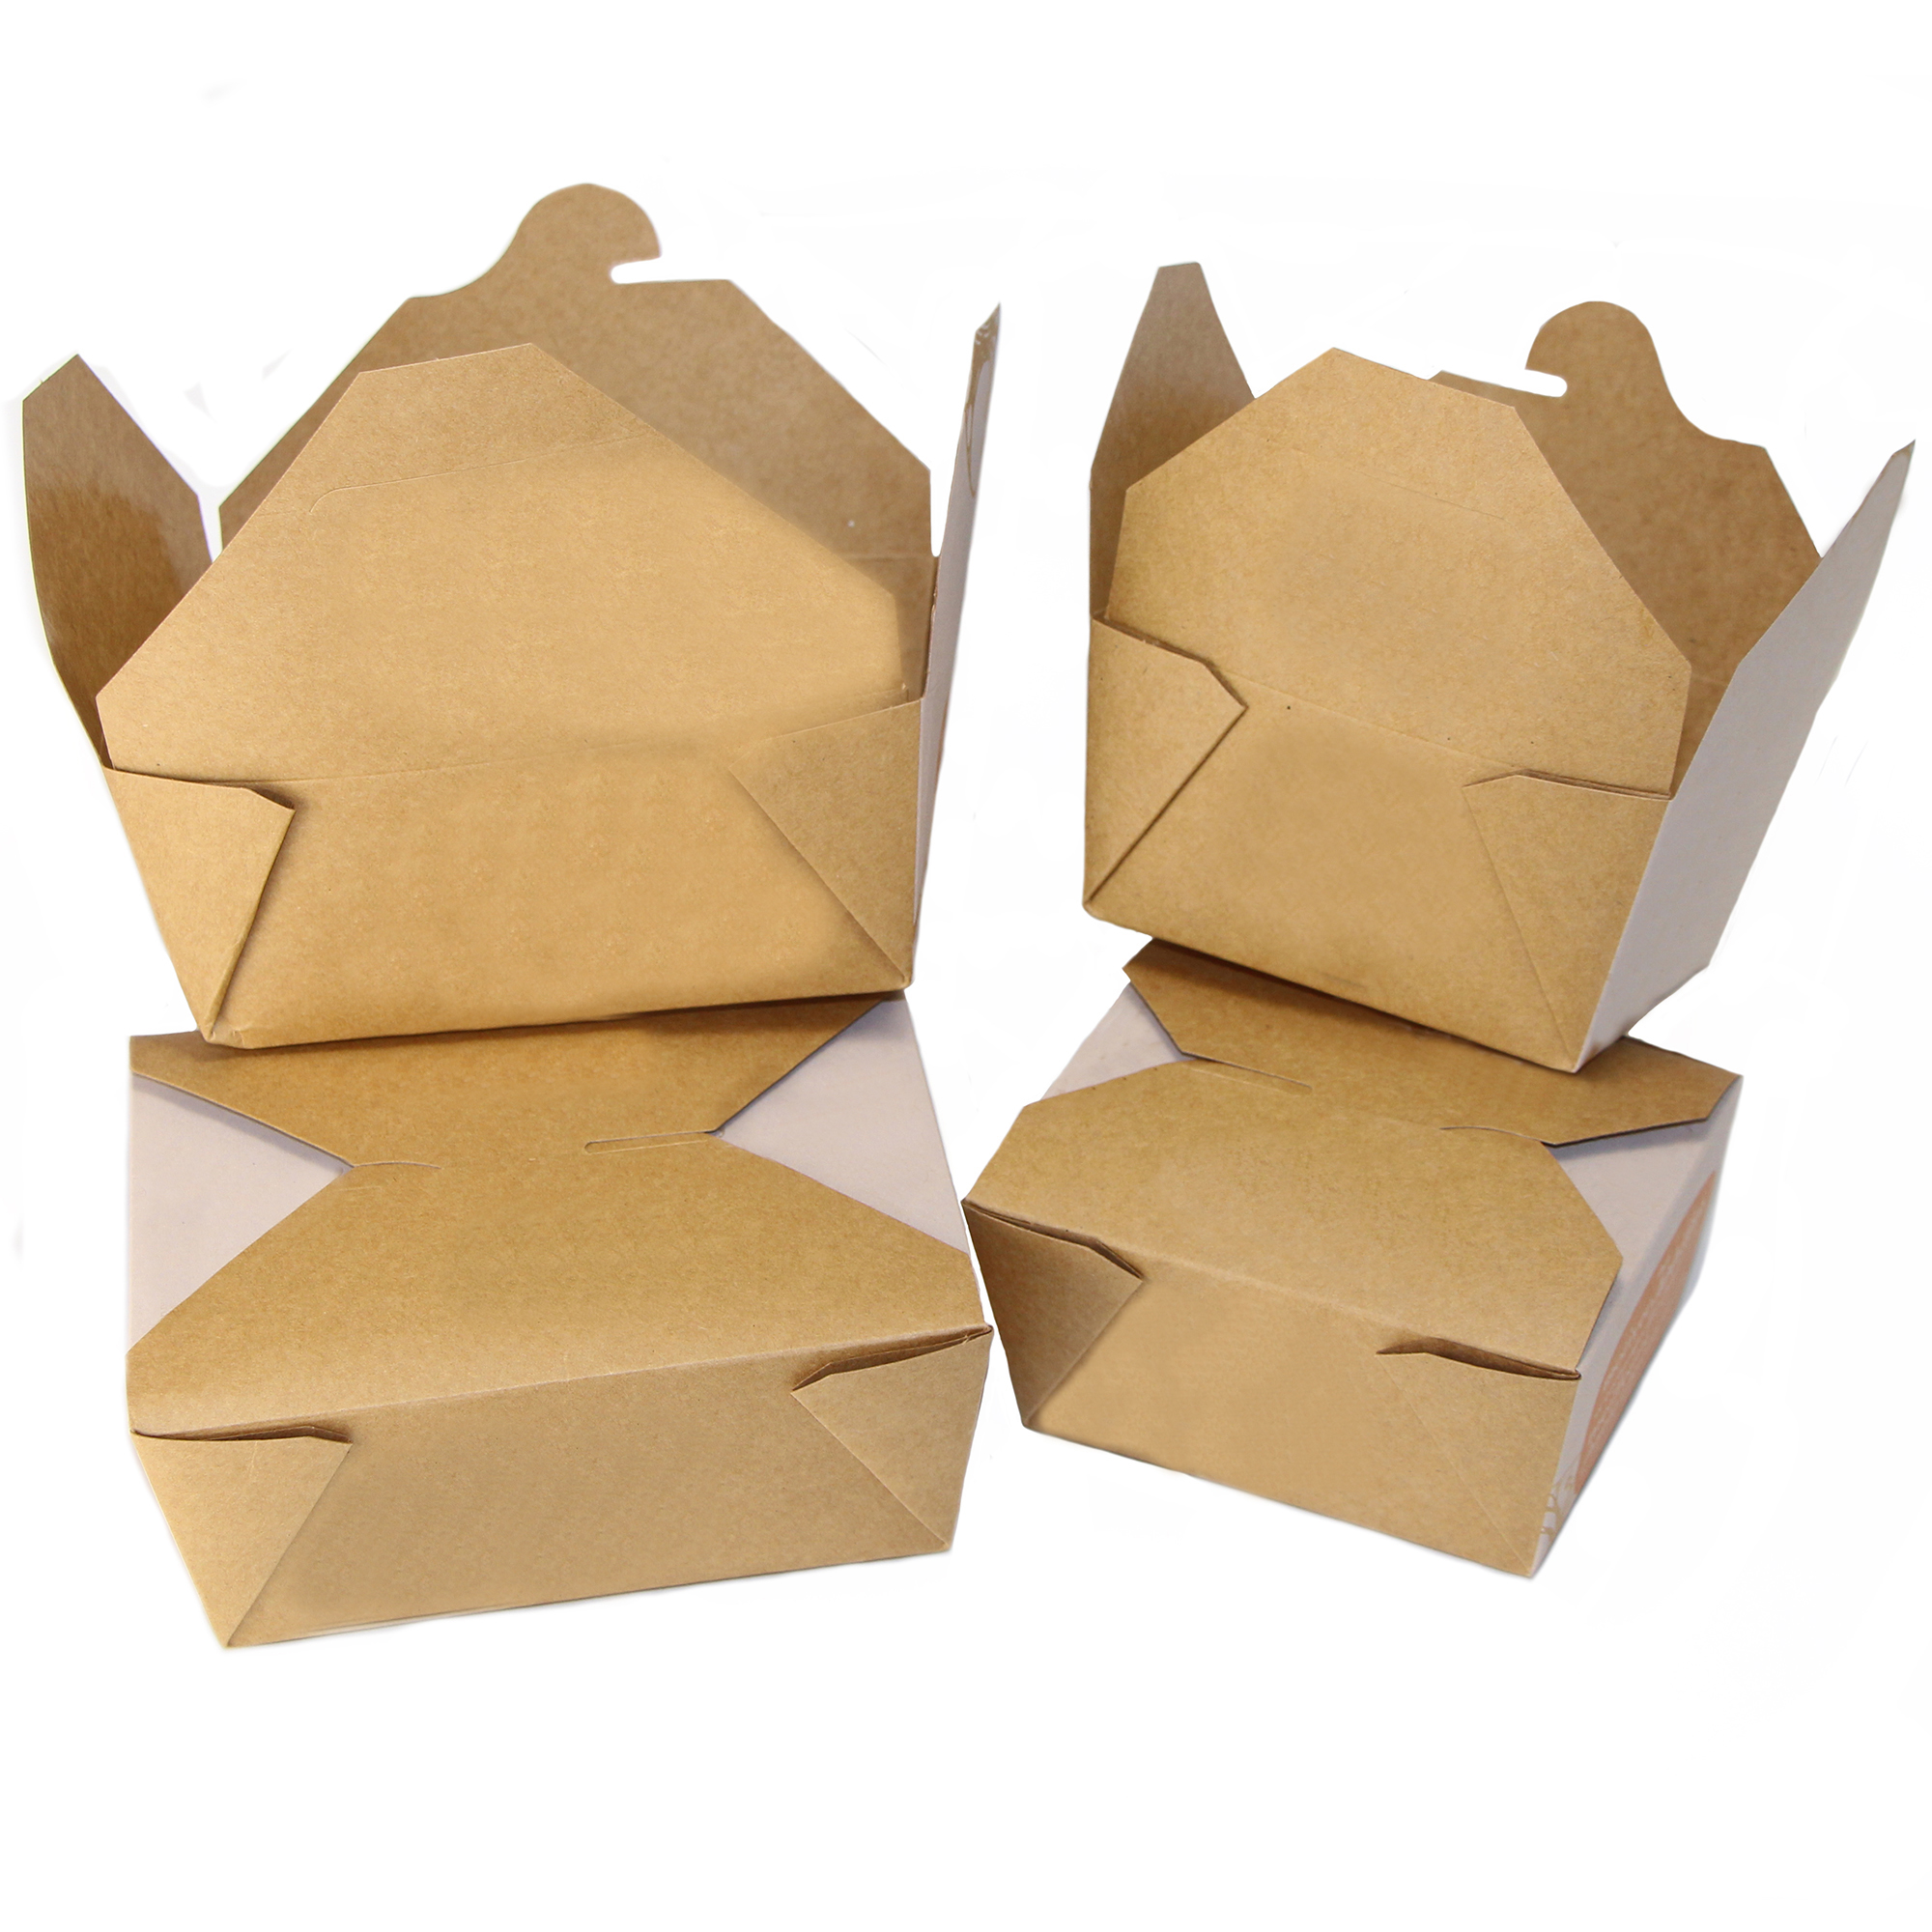 Custom Printed Recycled Kraft Paper Food Container • Wax Coated • Sizes 20, 37 Oz • Minimums: 30,000 Units Per Sku • Superior Print Quality To Show Your Logo/message